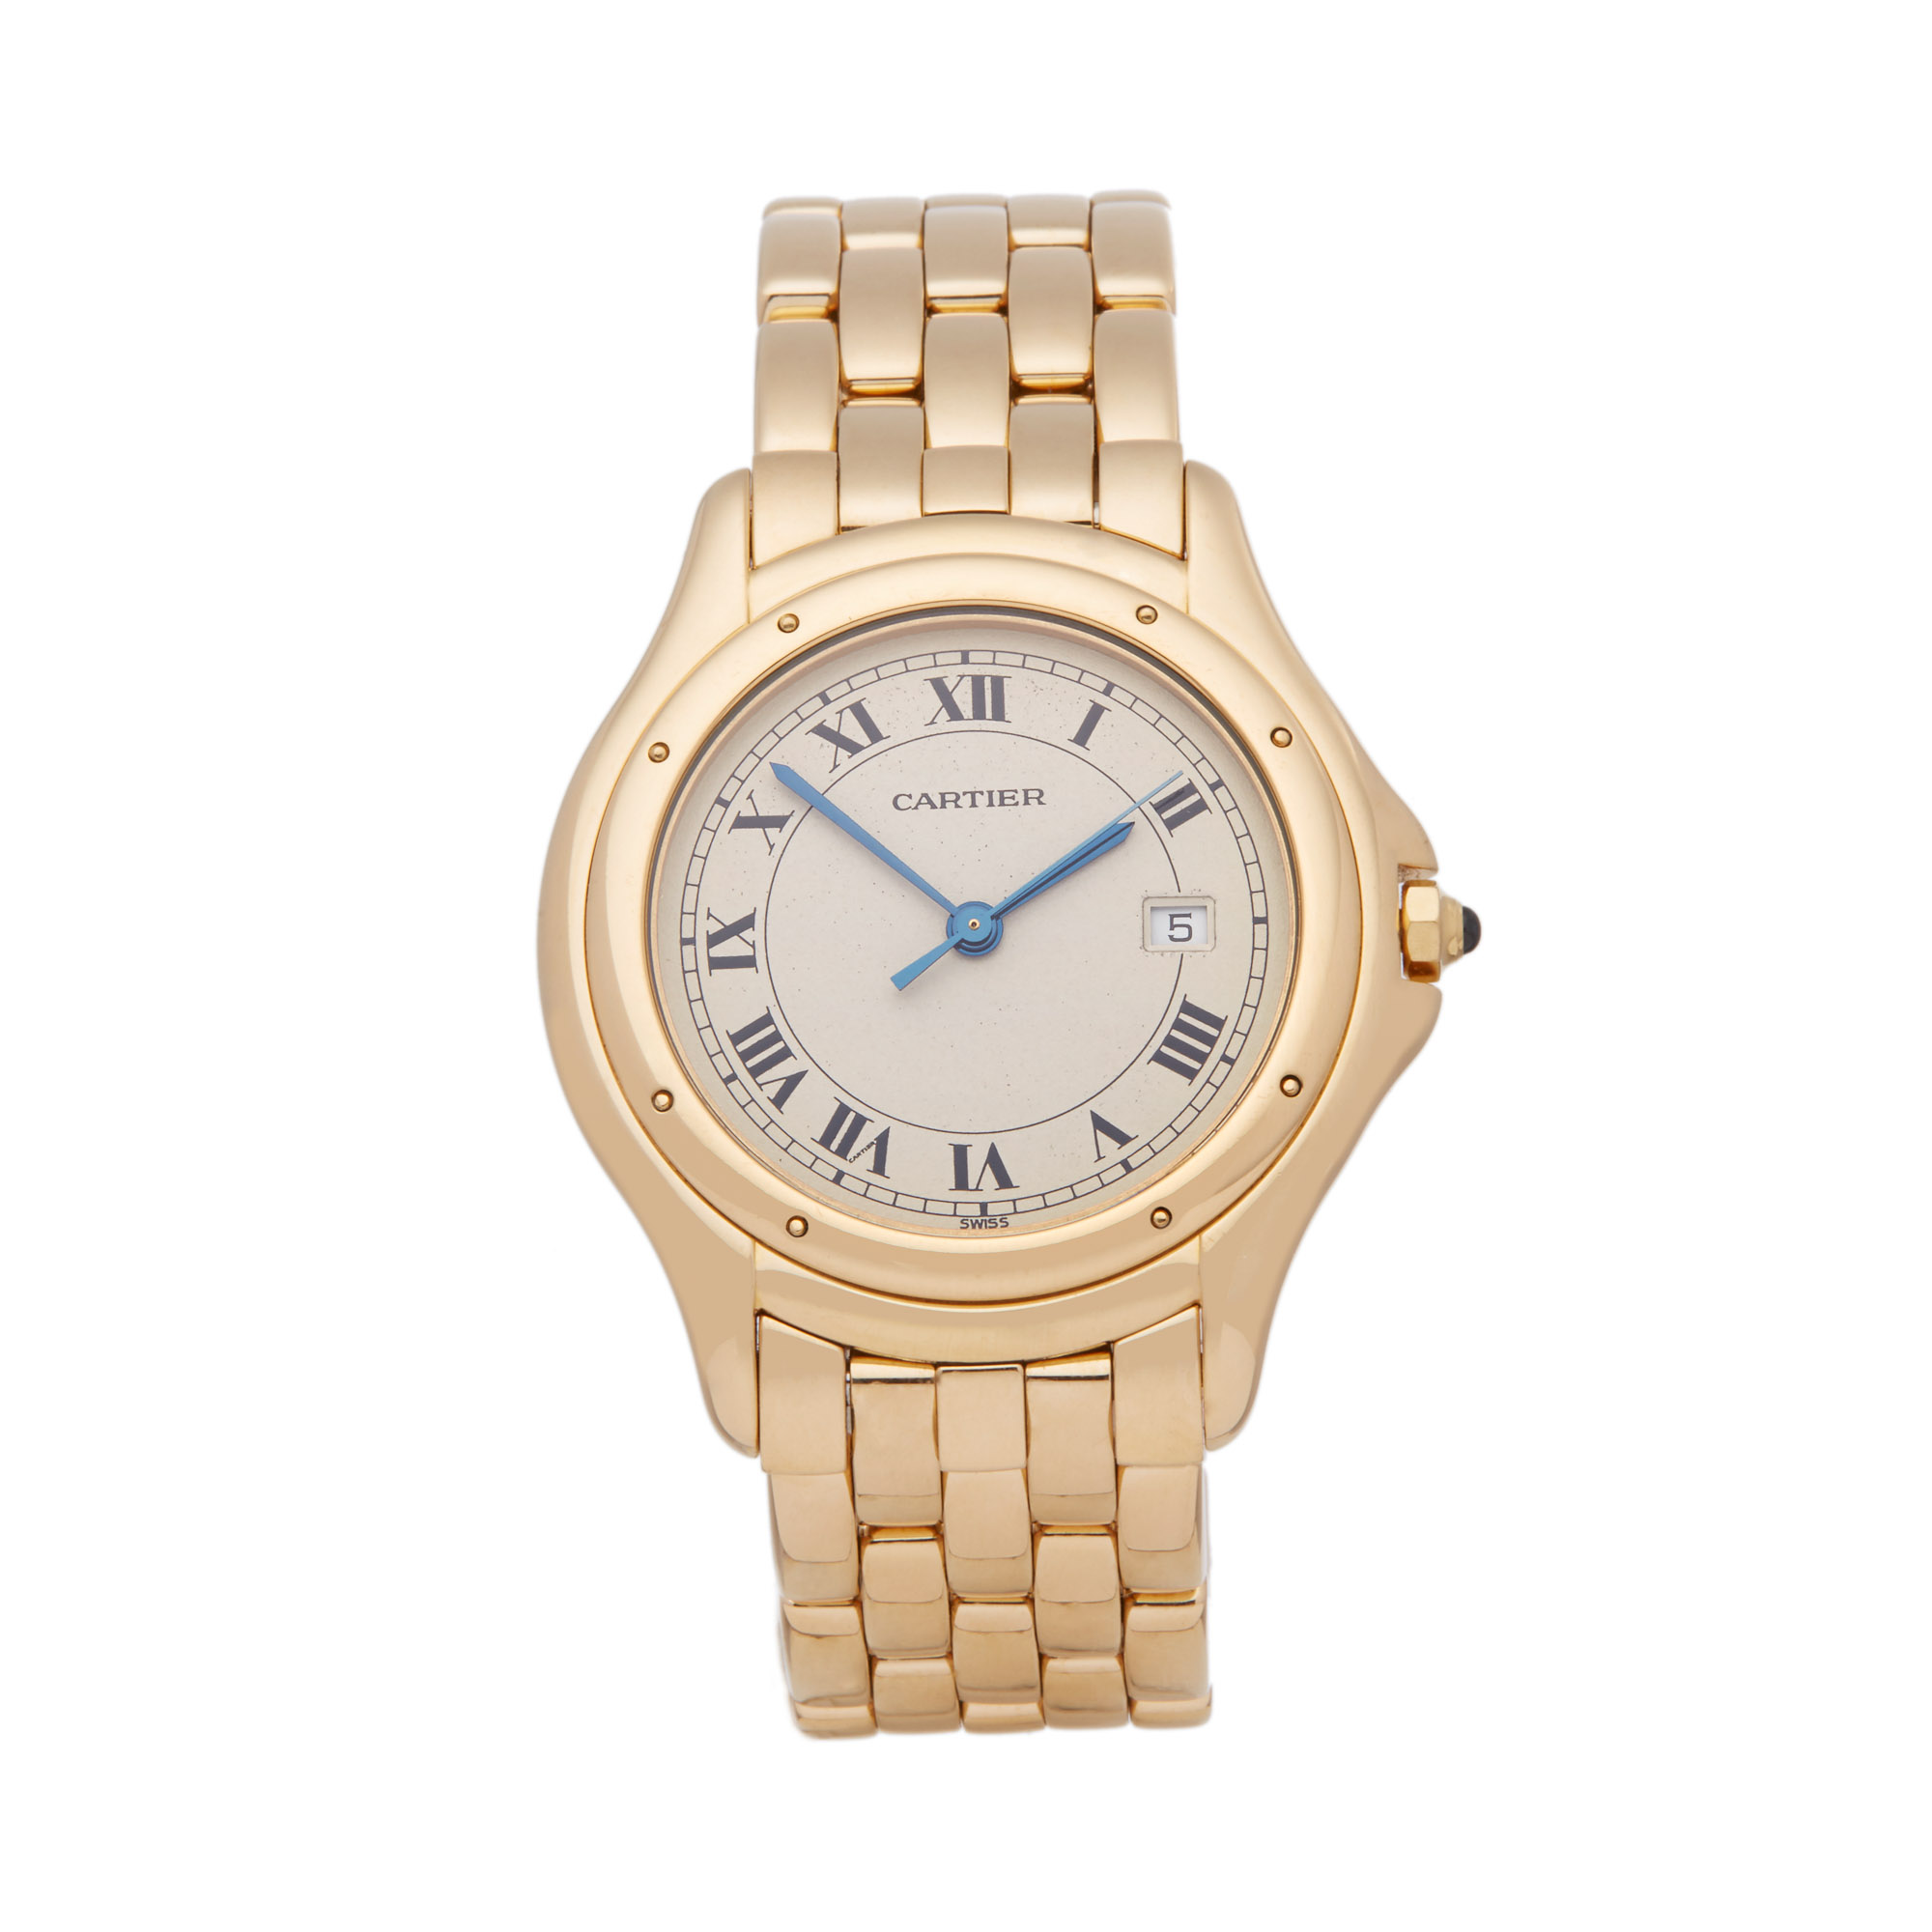 Lot 8 - Cartier Panthère Cougar 116000R Unisex Yellow Gold Watch